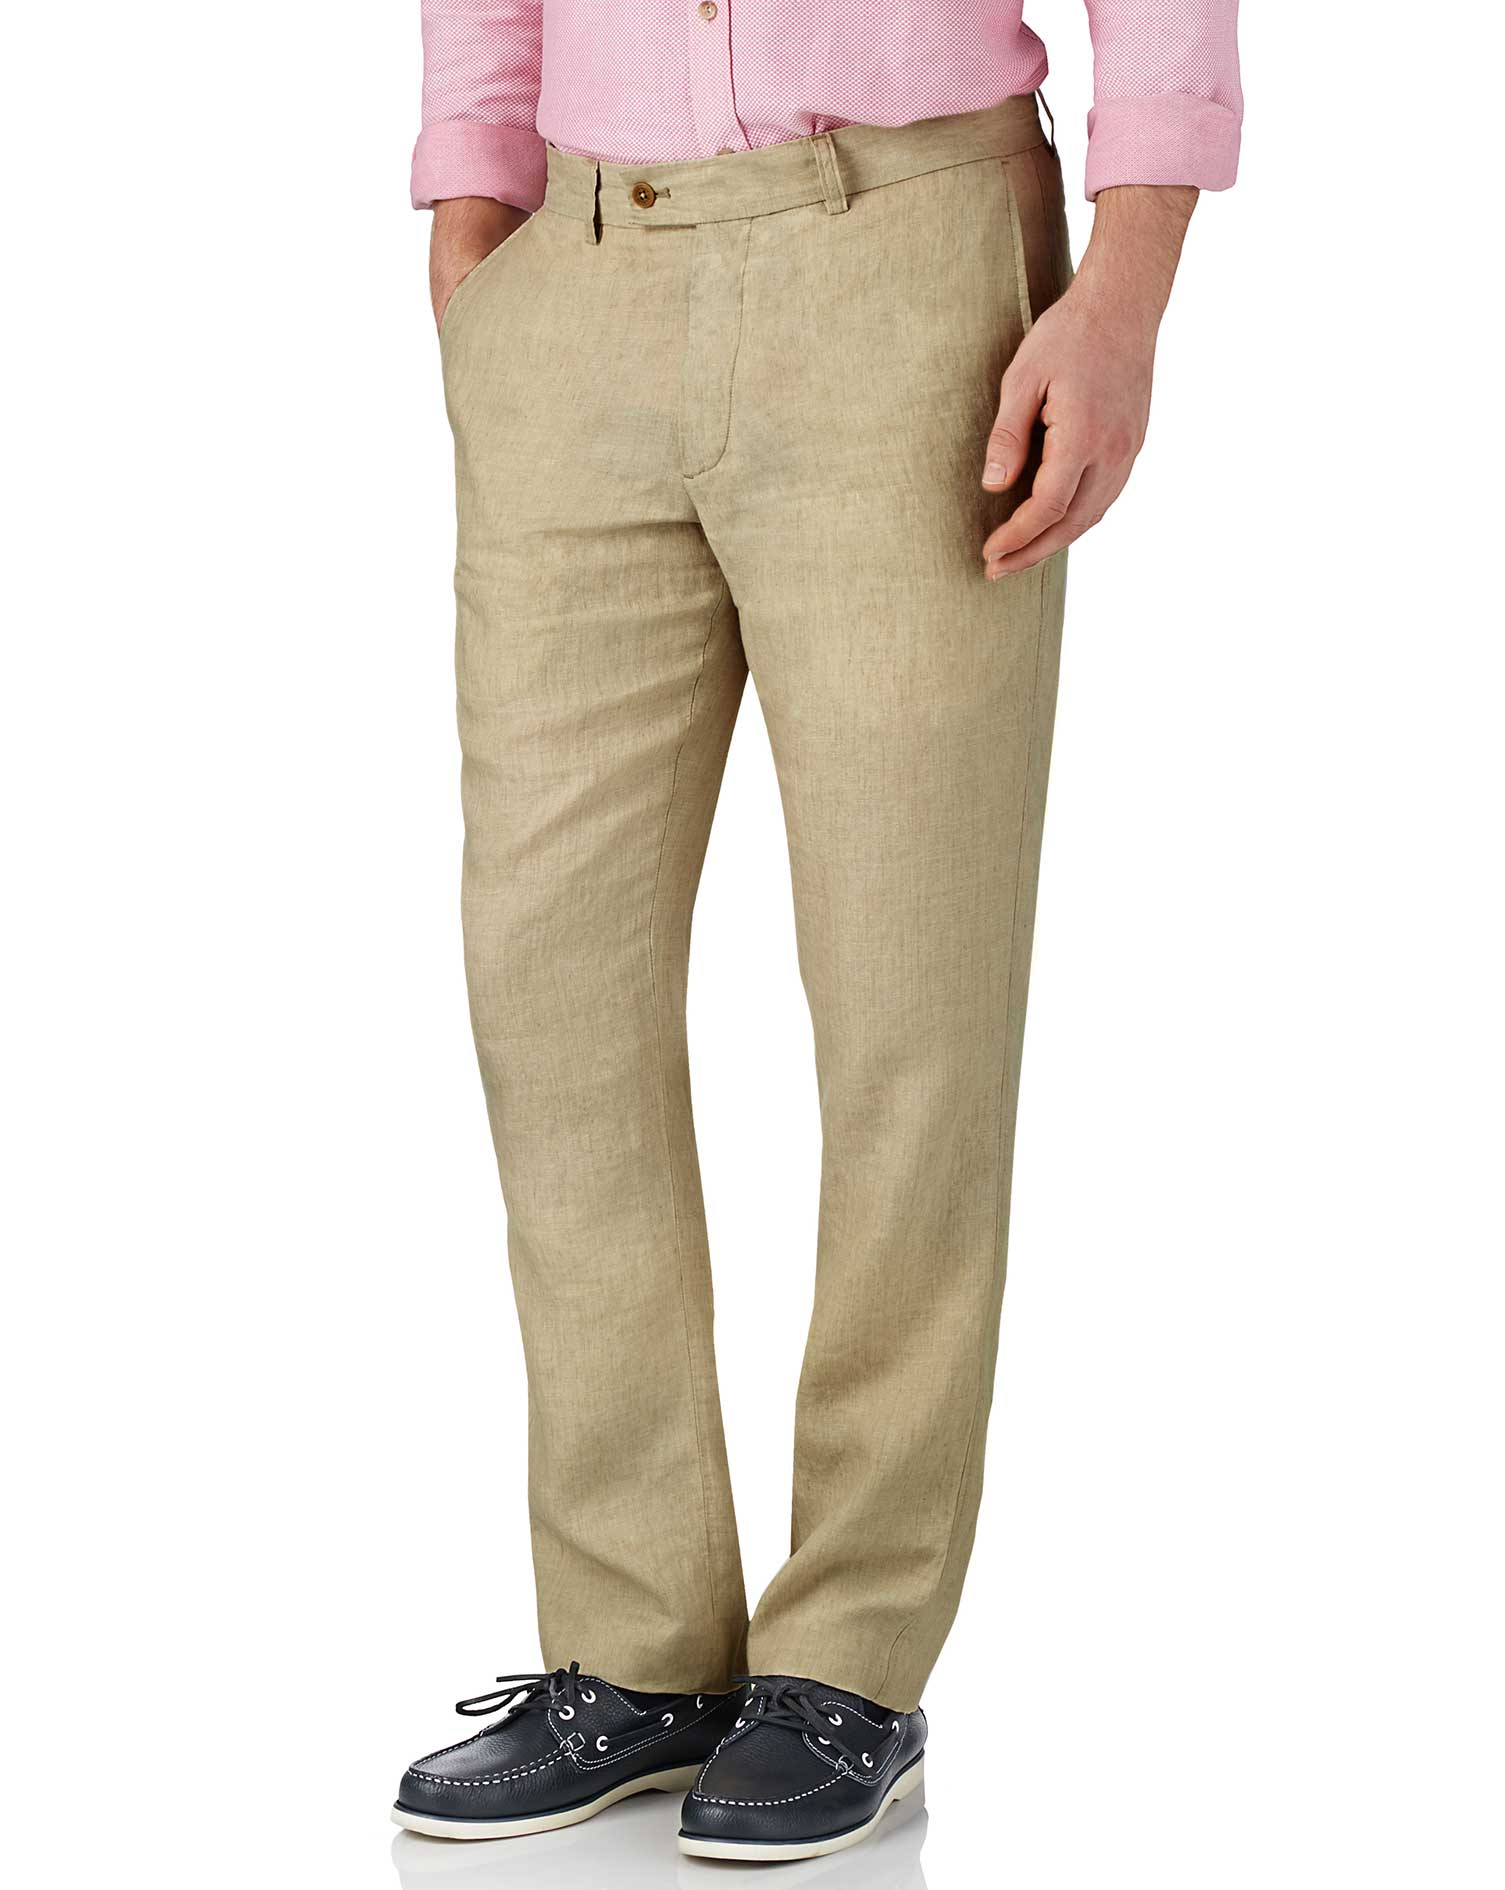 Stone Slim Fit Linen Trousers Size W32 L30 by Charles Tyrwhitt